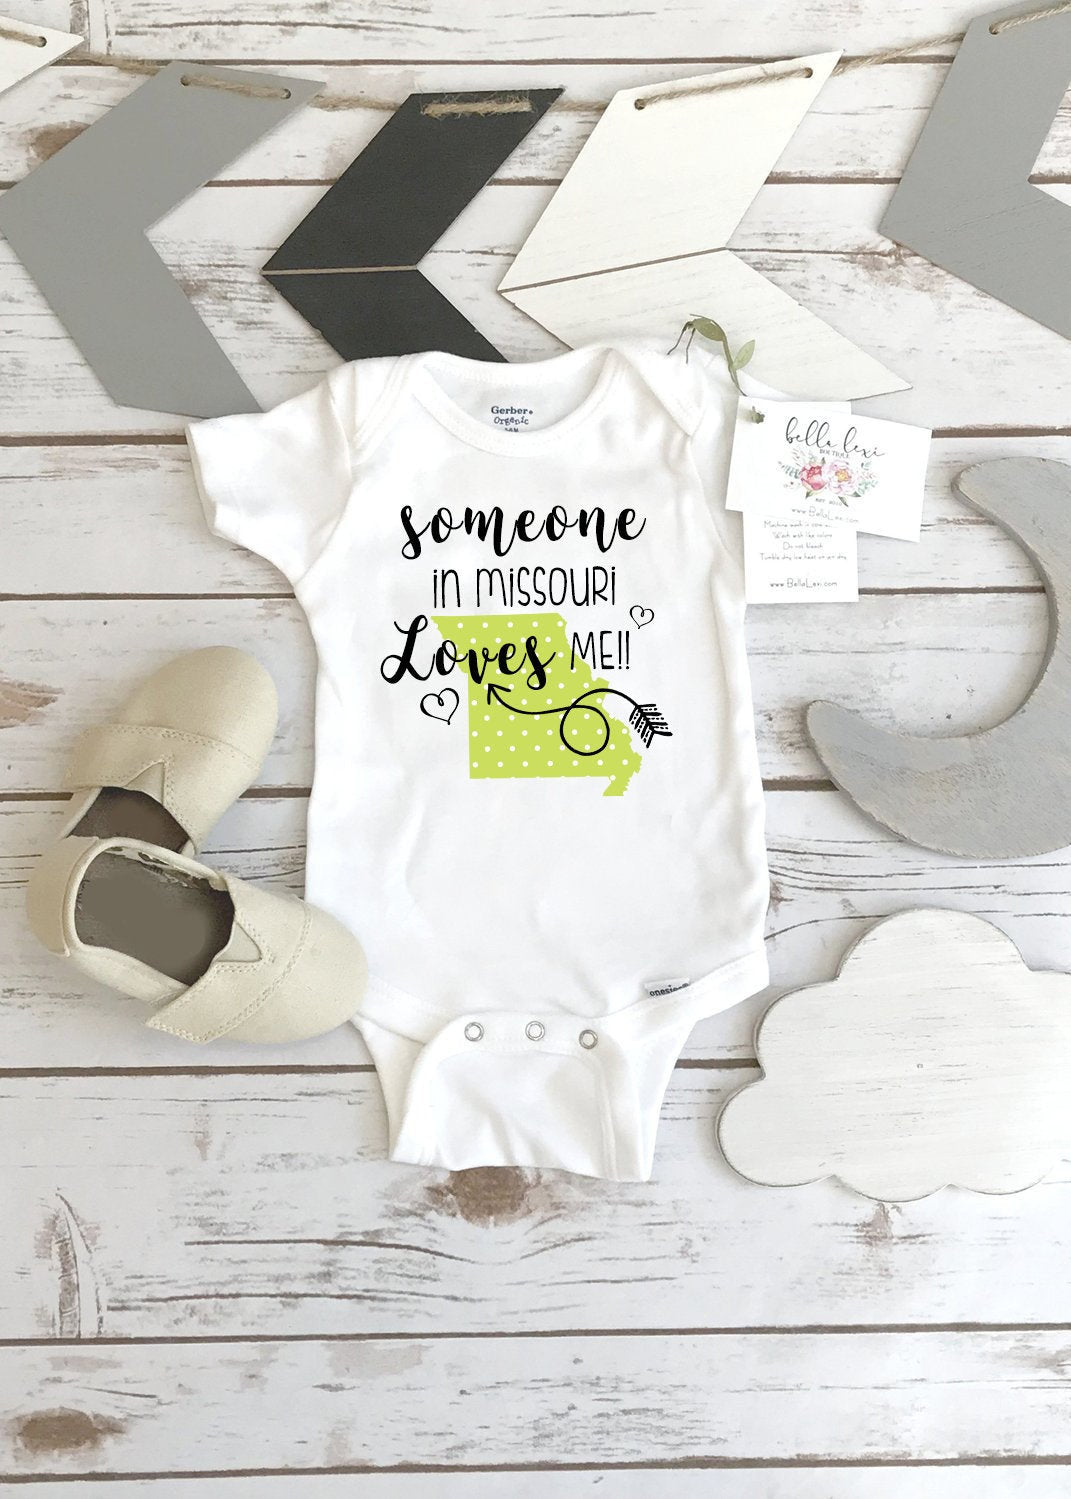 Missouri Onesie®, Baby Shower Gift, Someone in Missouri, State Onesie, from Missouri Love, Niece Gift, Gift from Auntie, Nephew Gifts, Aunt